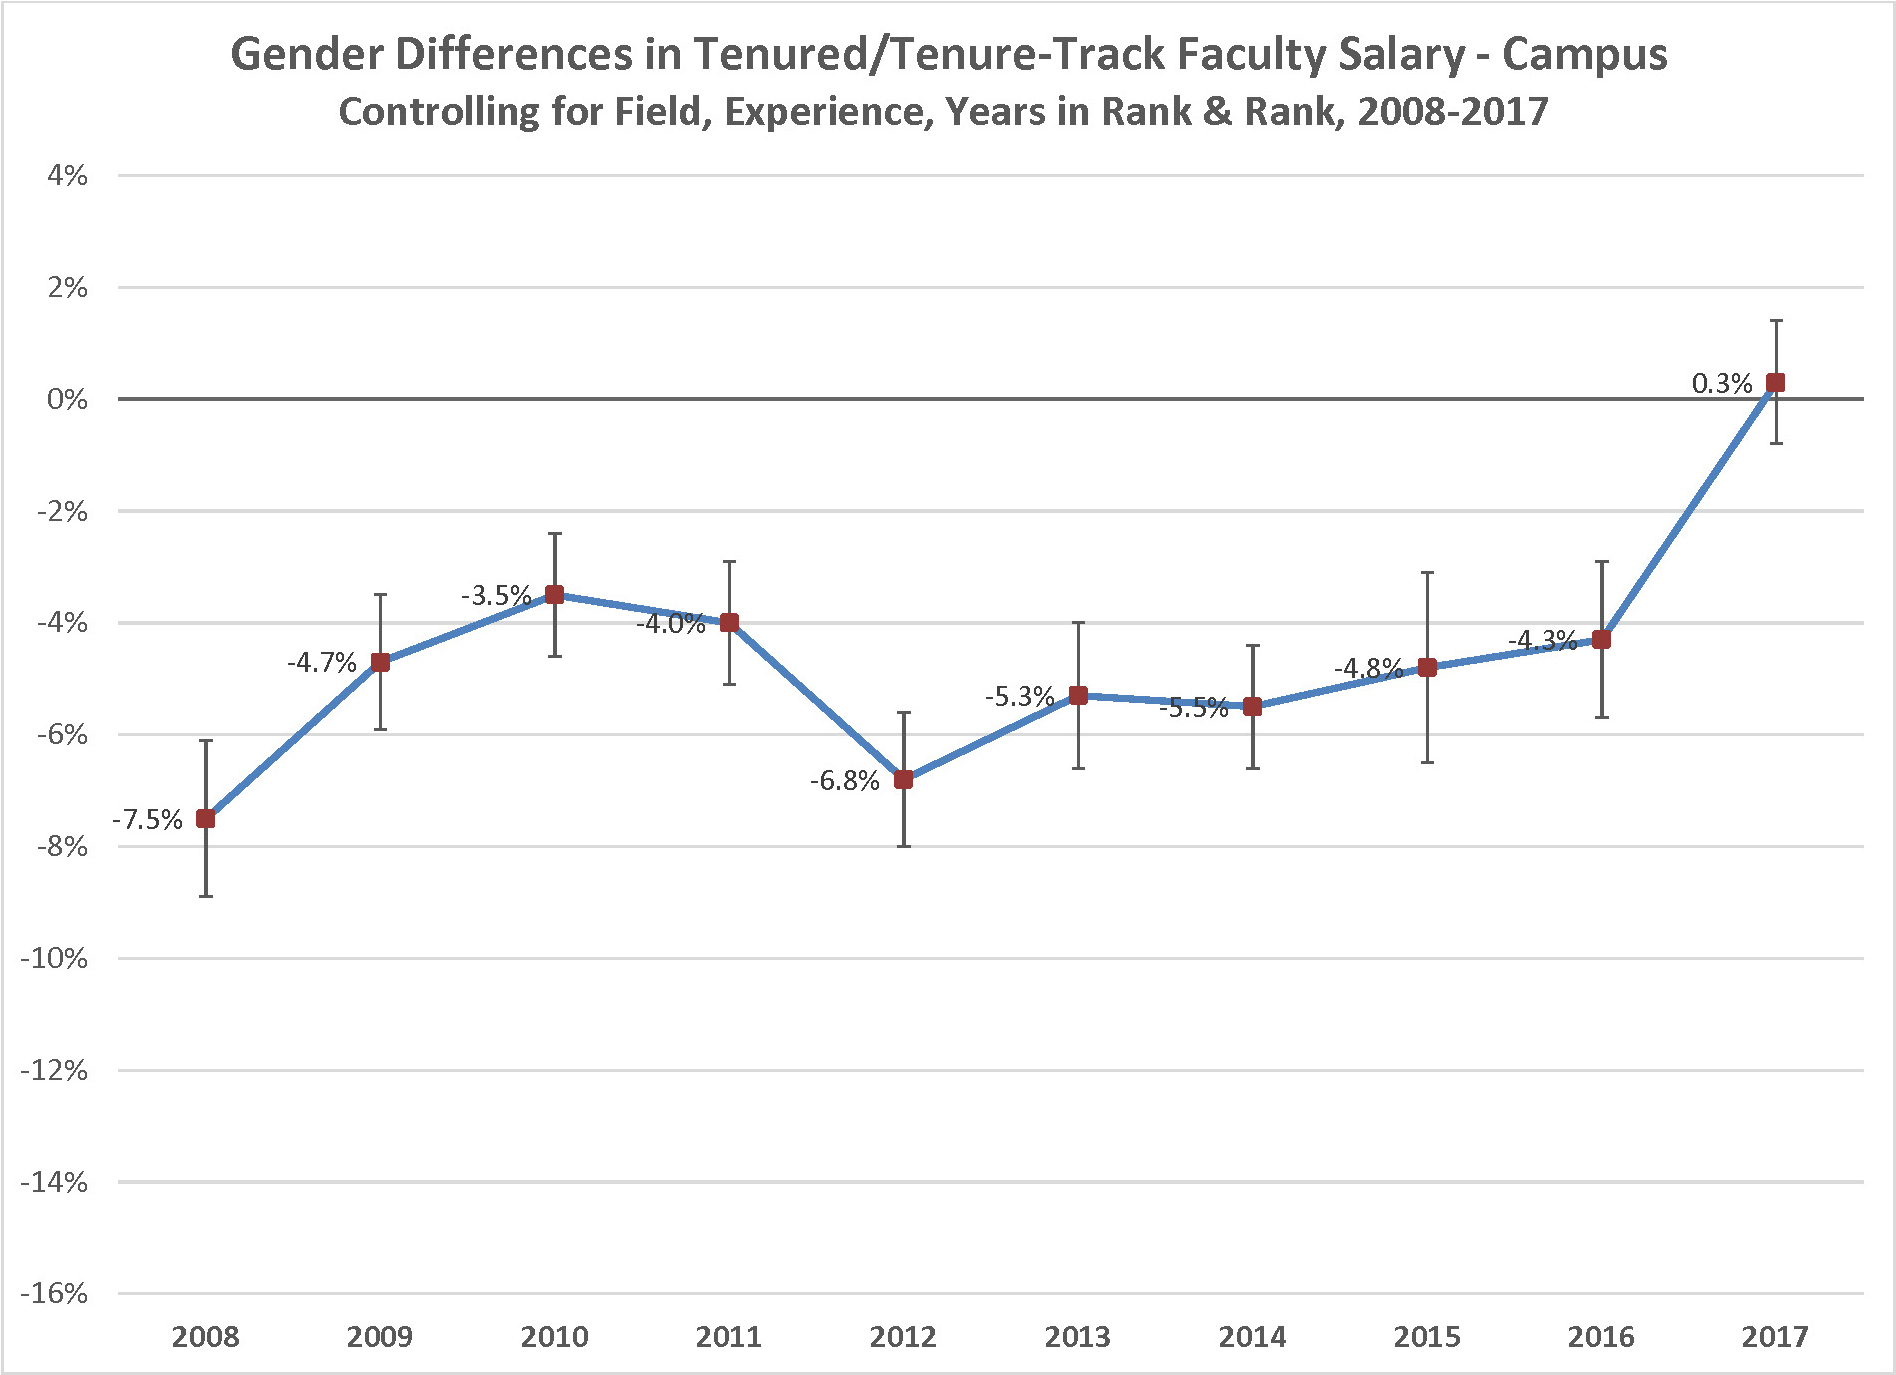 Line graph for gender differences in Tenured/Tenure-Track faculty salary